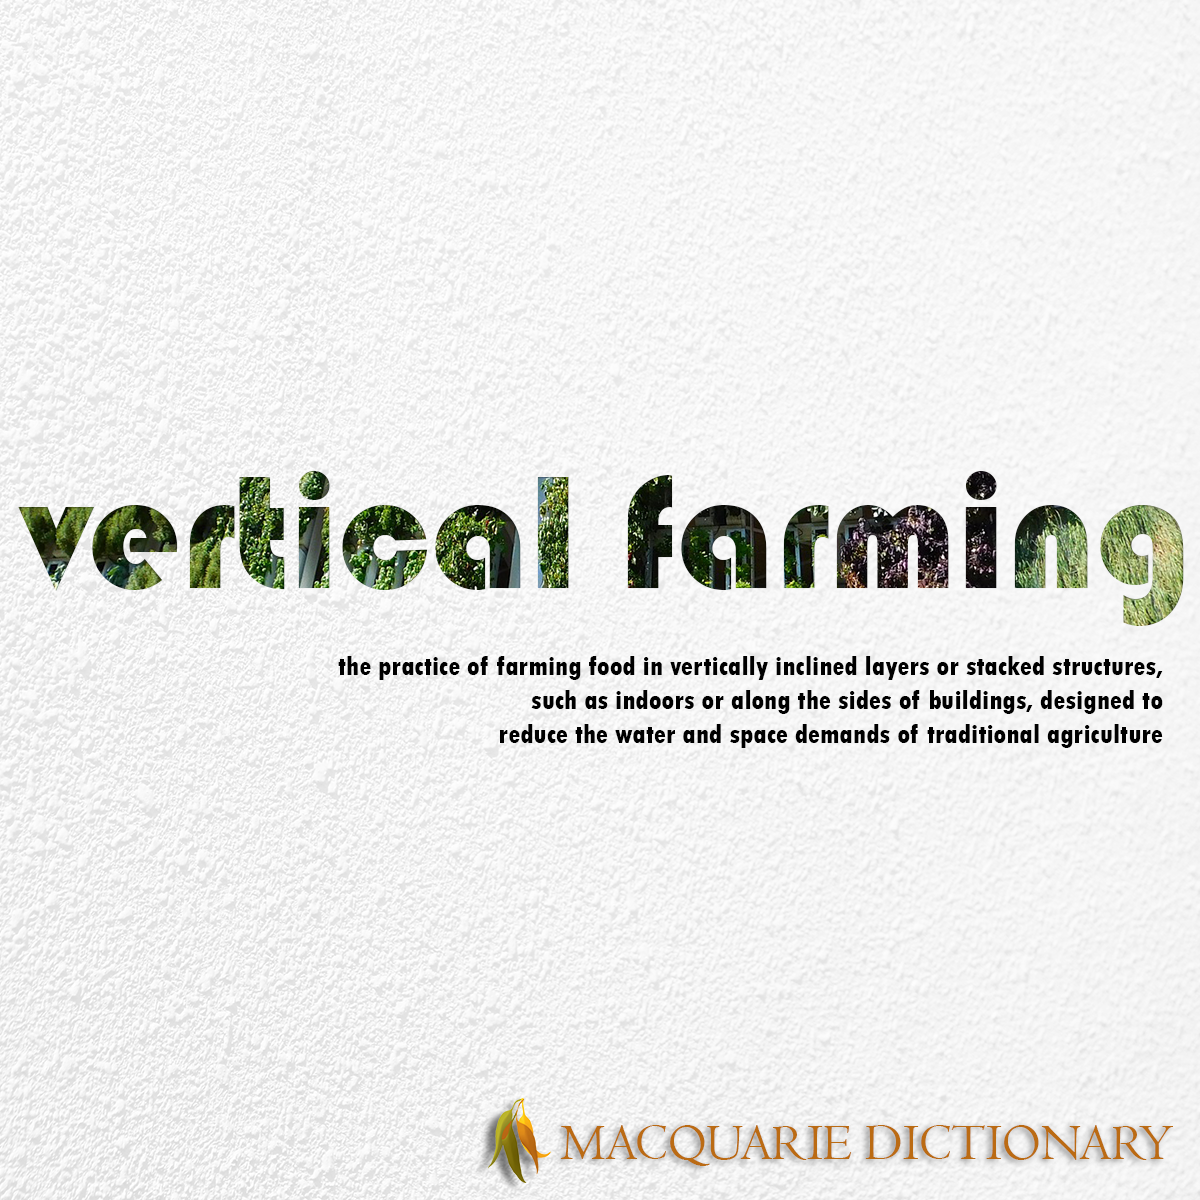 Image of Macquarie Dictionary Word of the Year - vertical farming - the practice of farming food in vertically inclined layers or stacked structures, such as indoors or along the sides of buildings, designed to reduce the water and space demands of traditional agriculture.